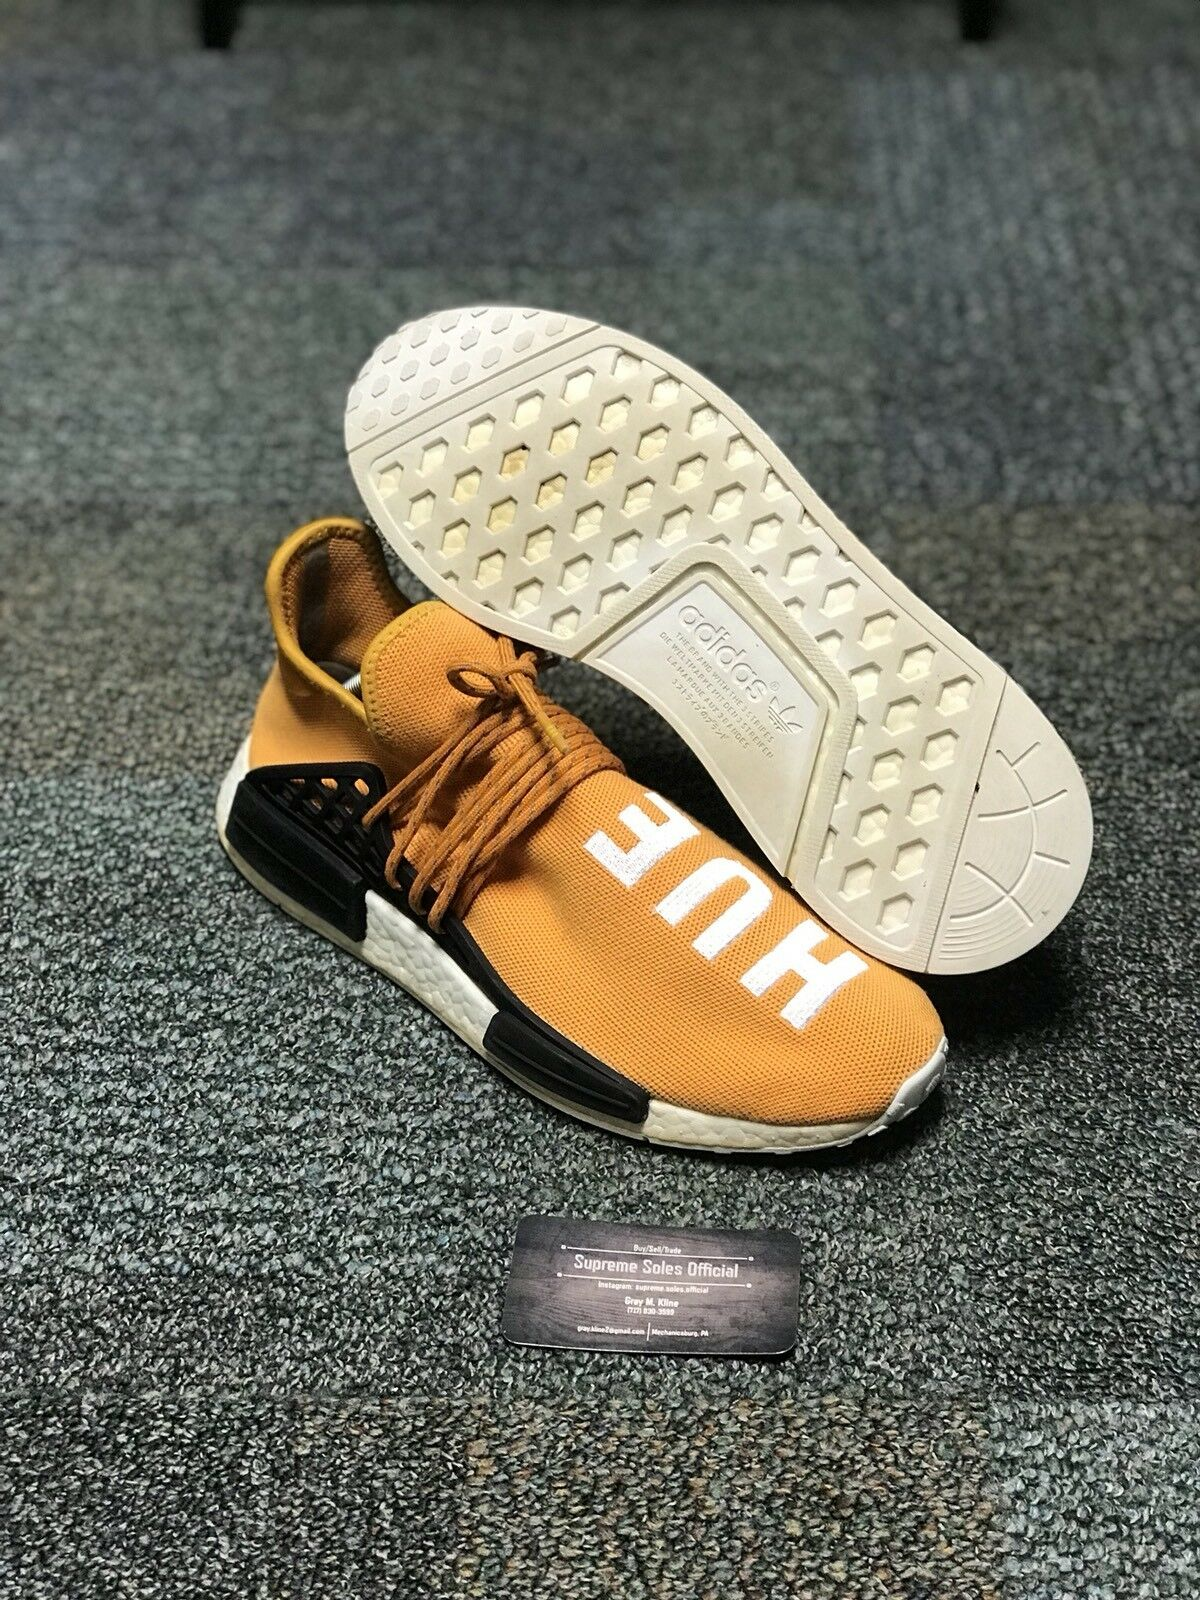 ADIDAS PW HUMAN RACE NMD BOOST PHARRELL TANGERINE orange BB3070 SIZE 10